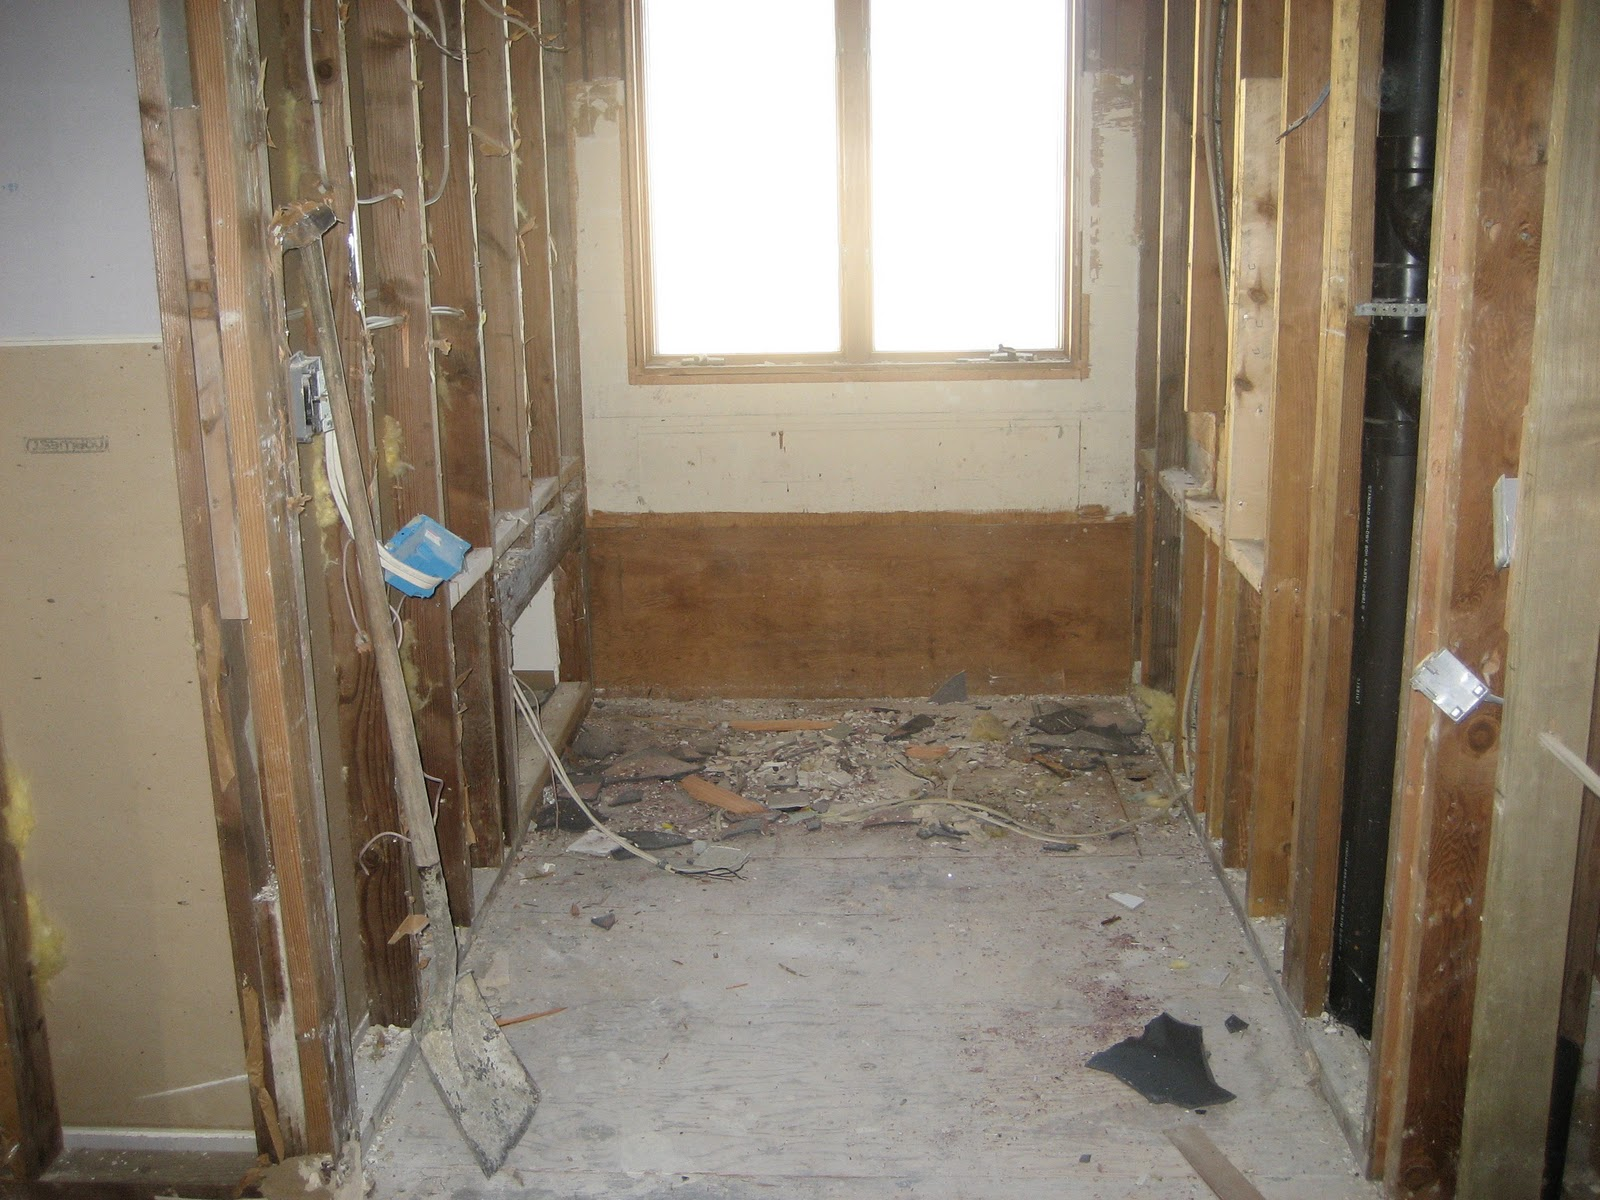 And this is the newly demoed shower area.